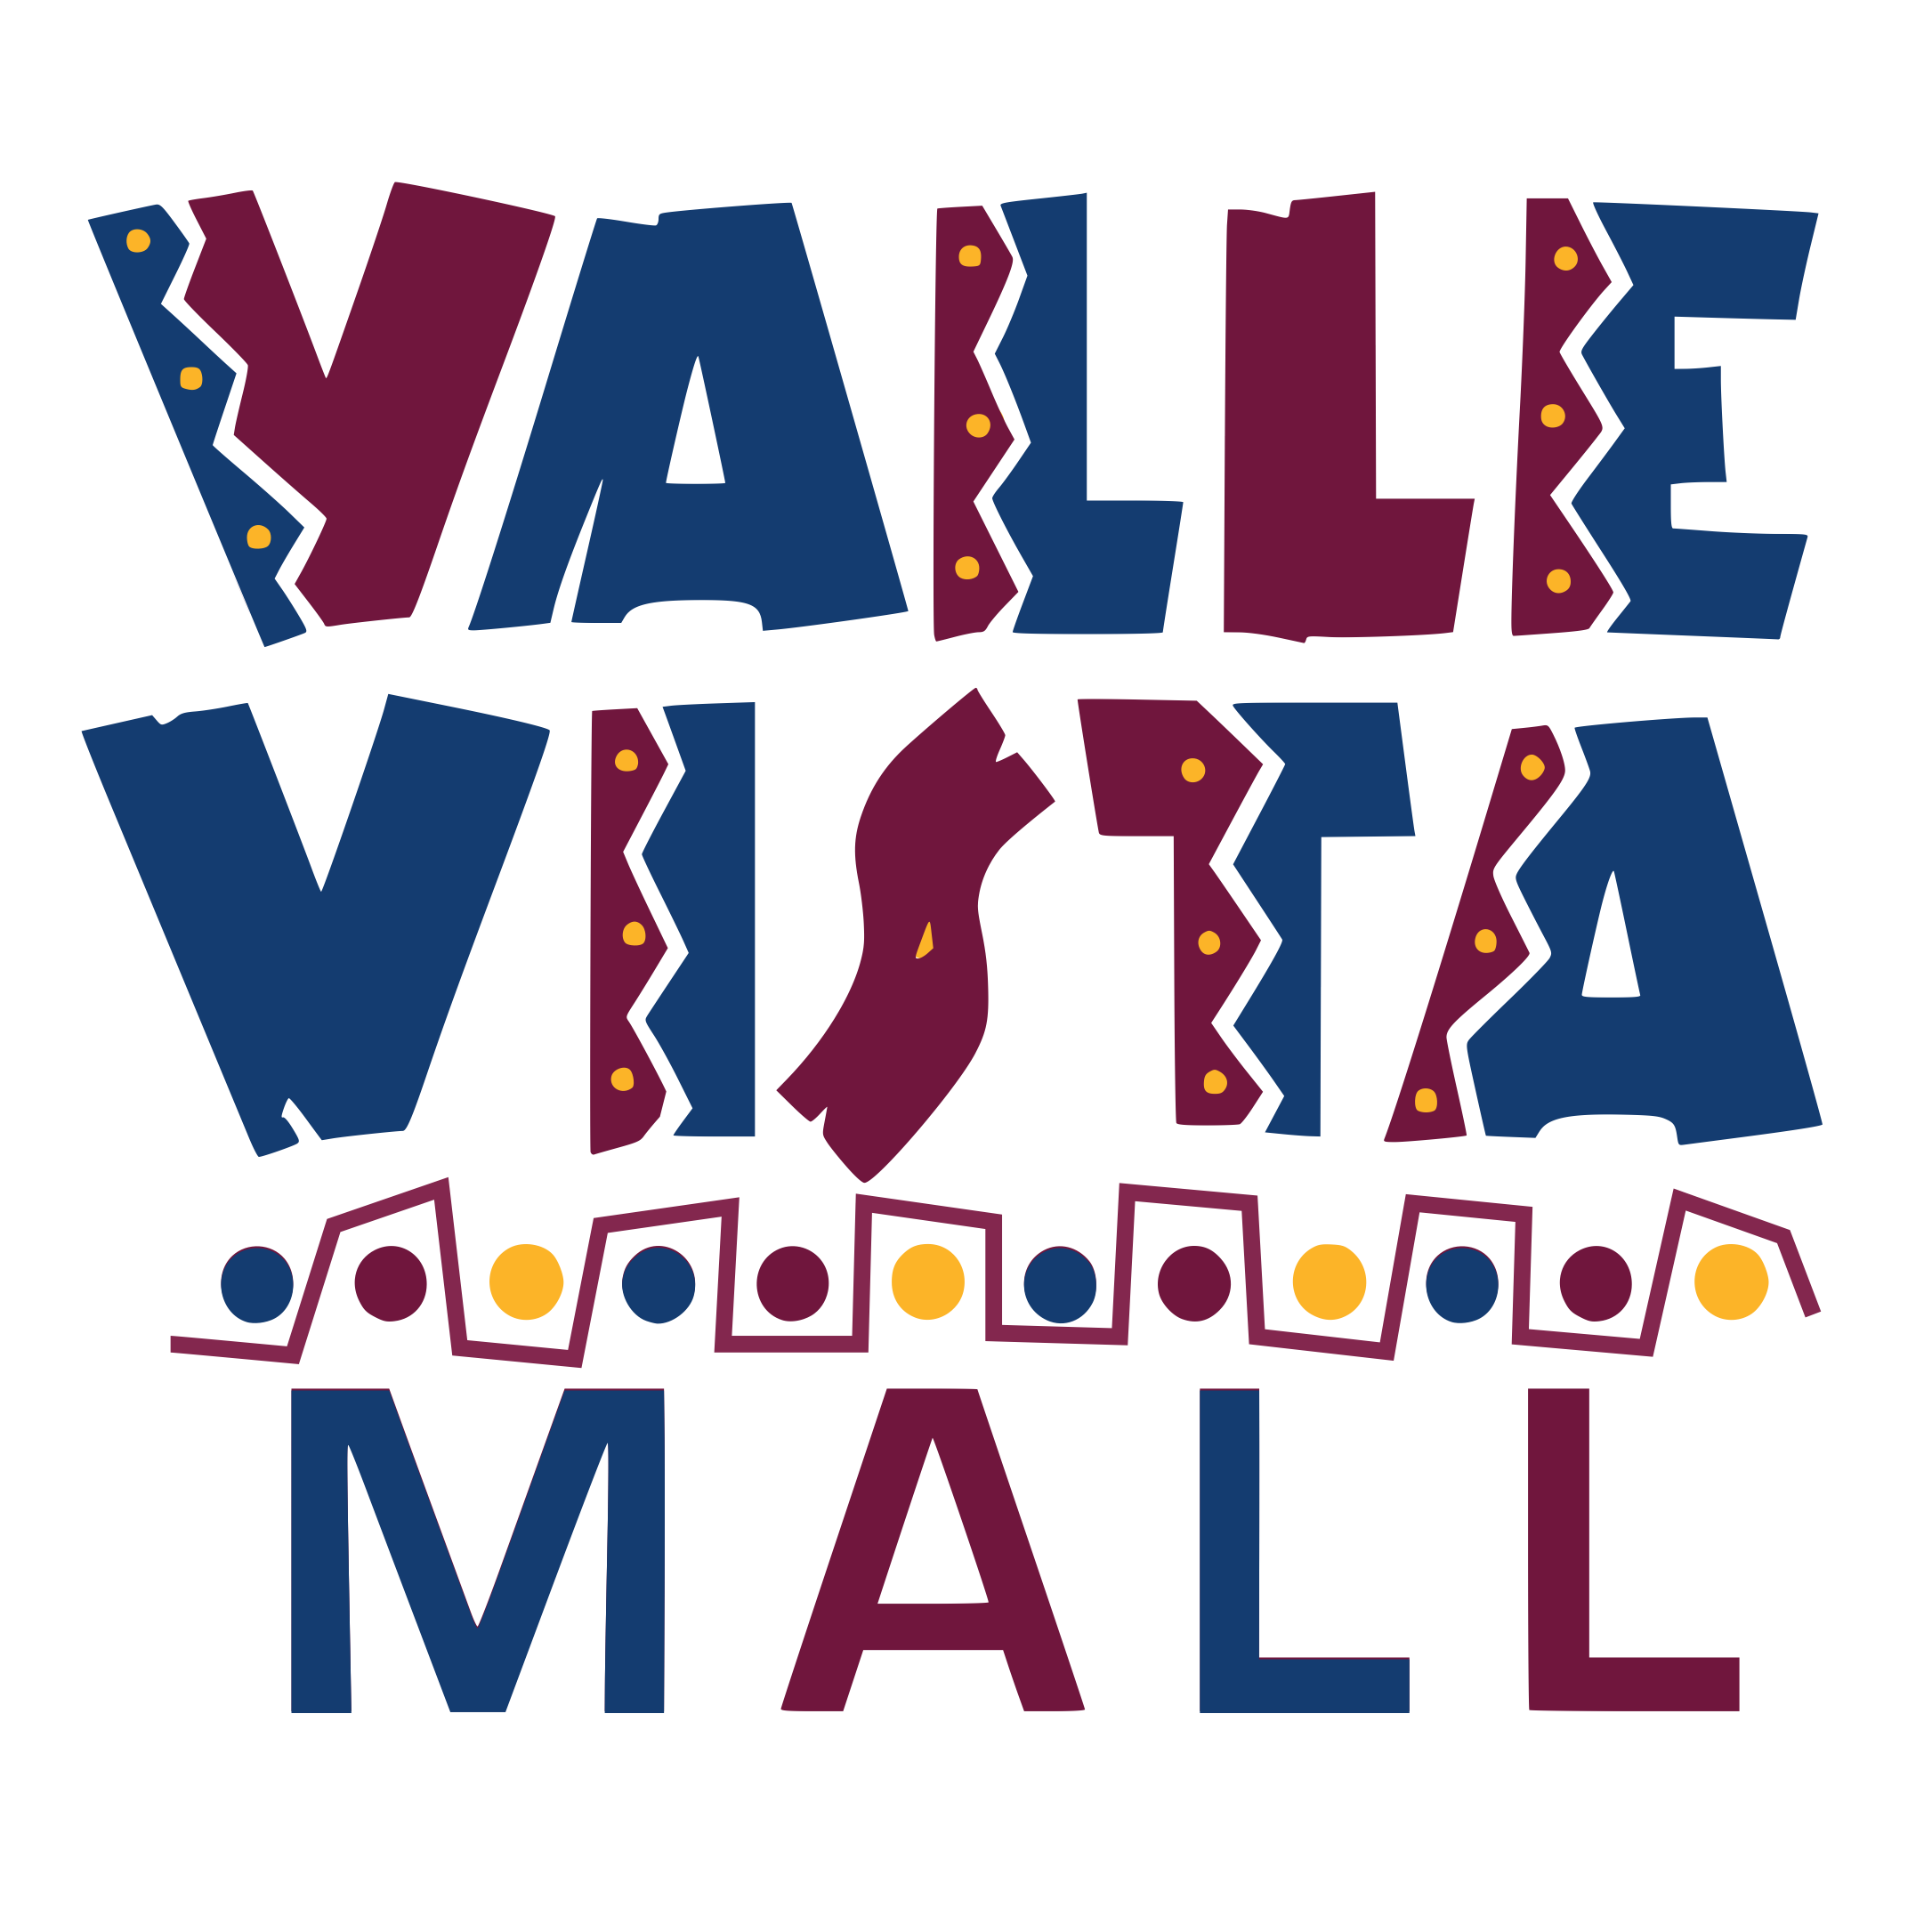 Blue and maroonValle Vista Mall logo